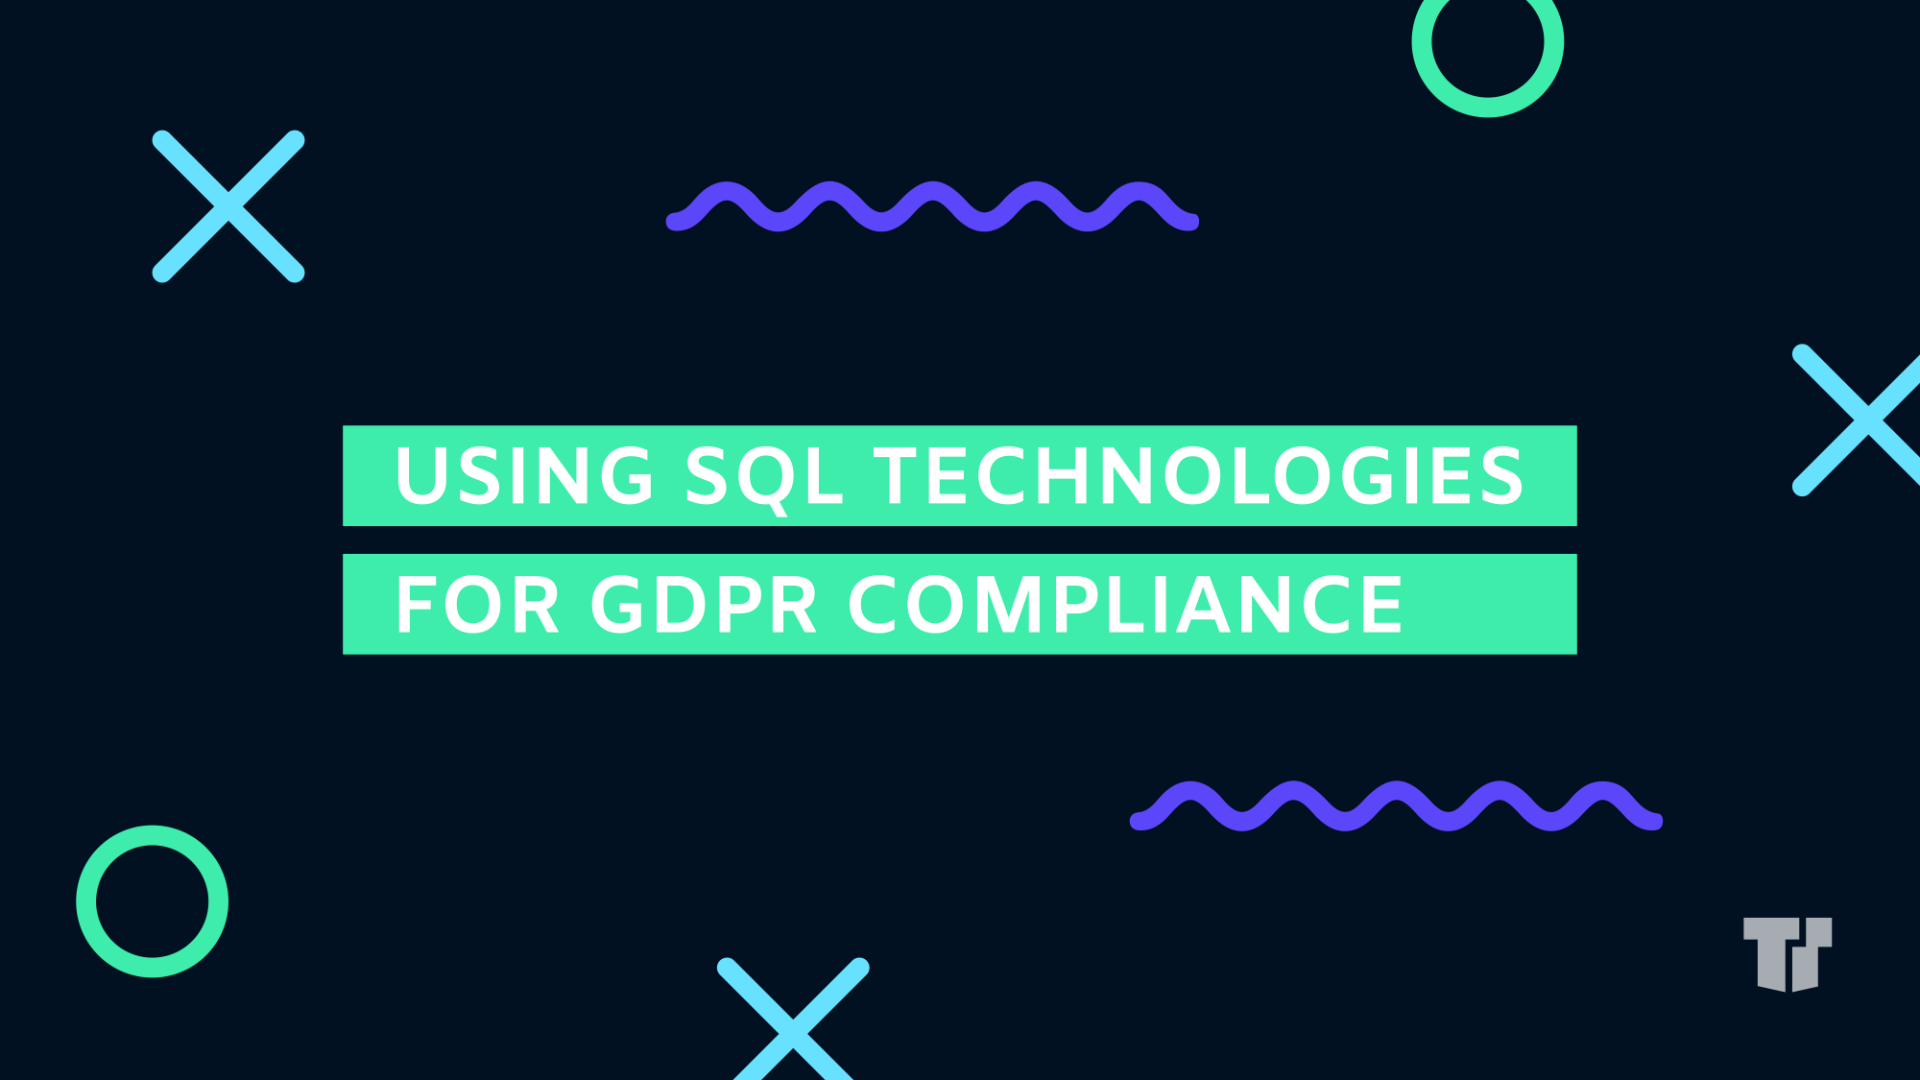 Using SQL Technologies for GDPR Compliance cover image